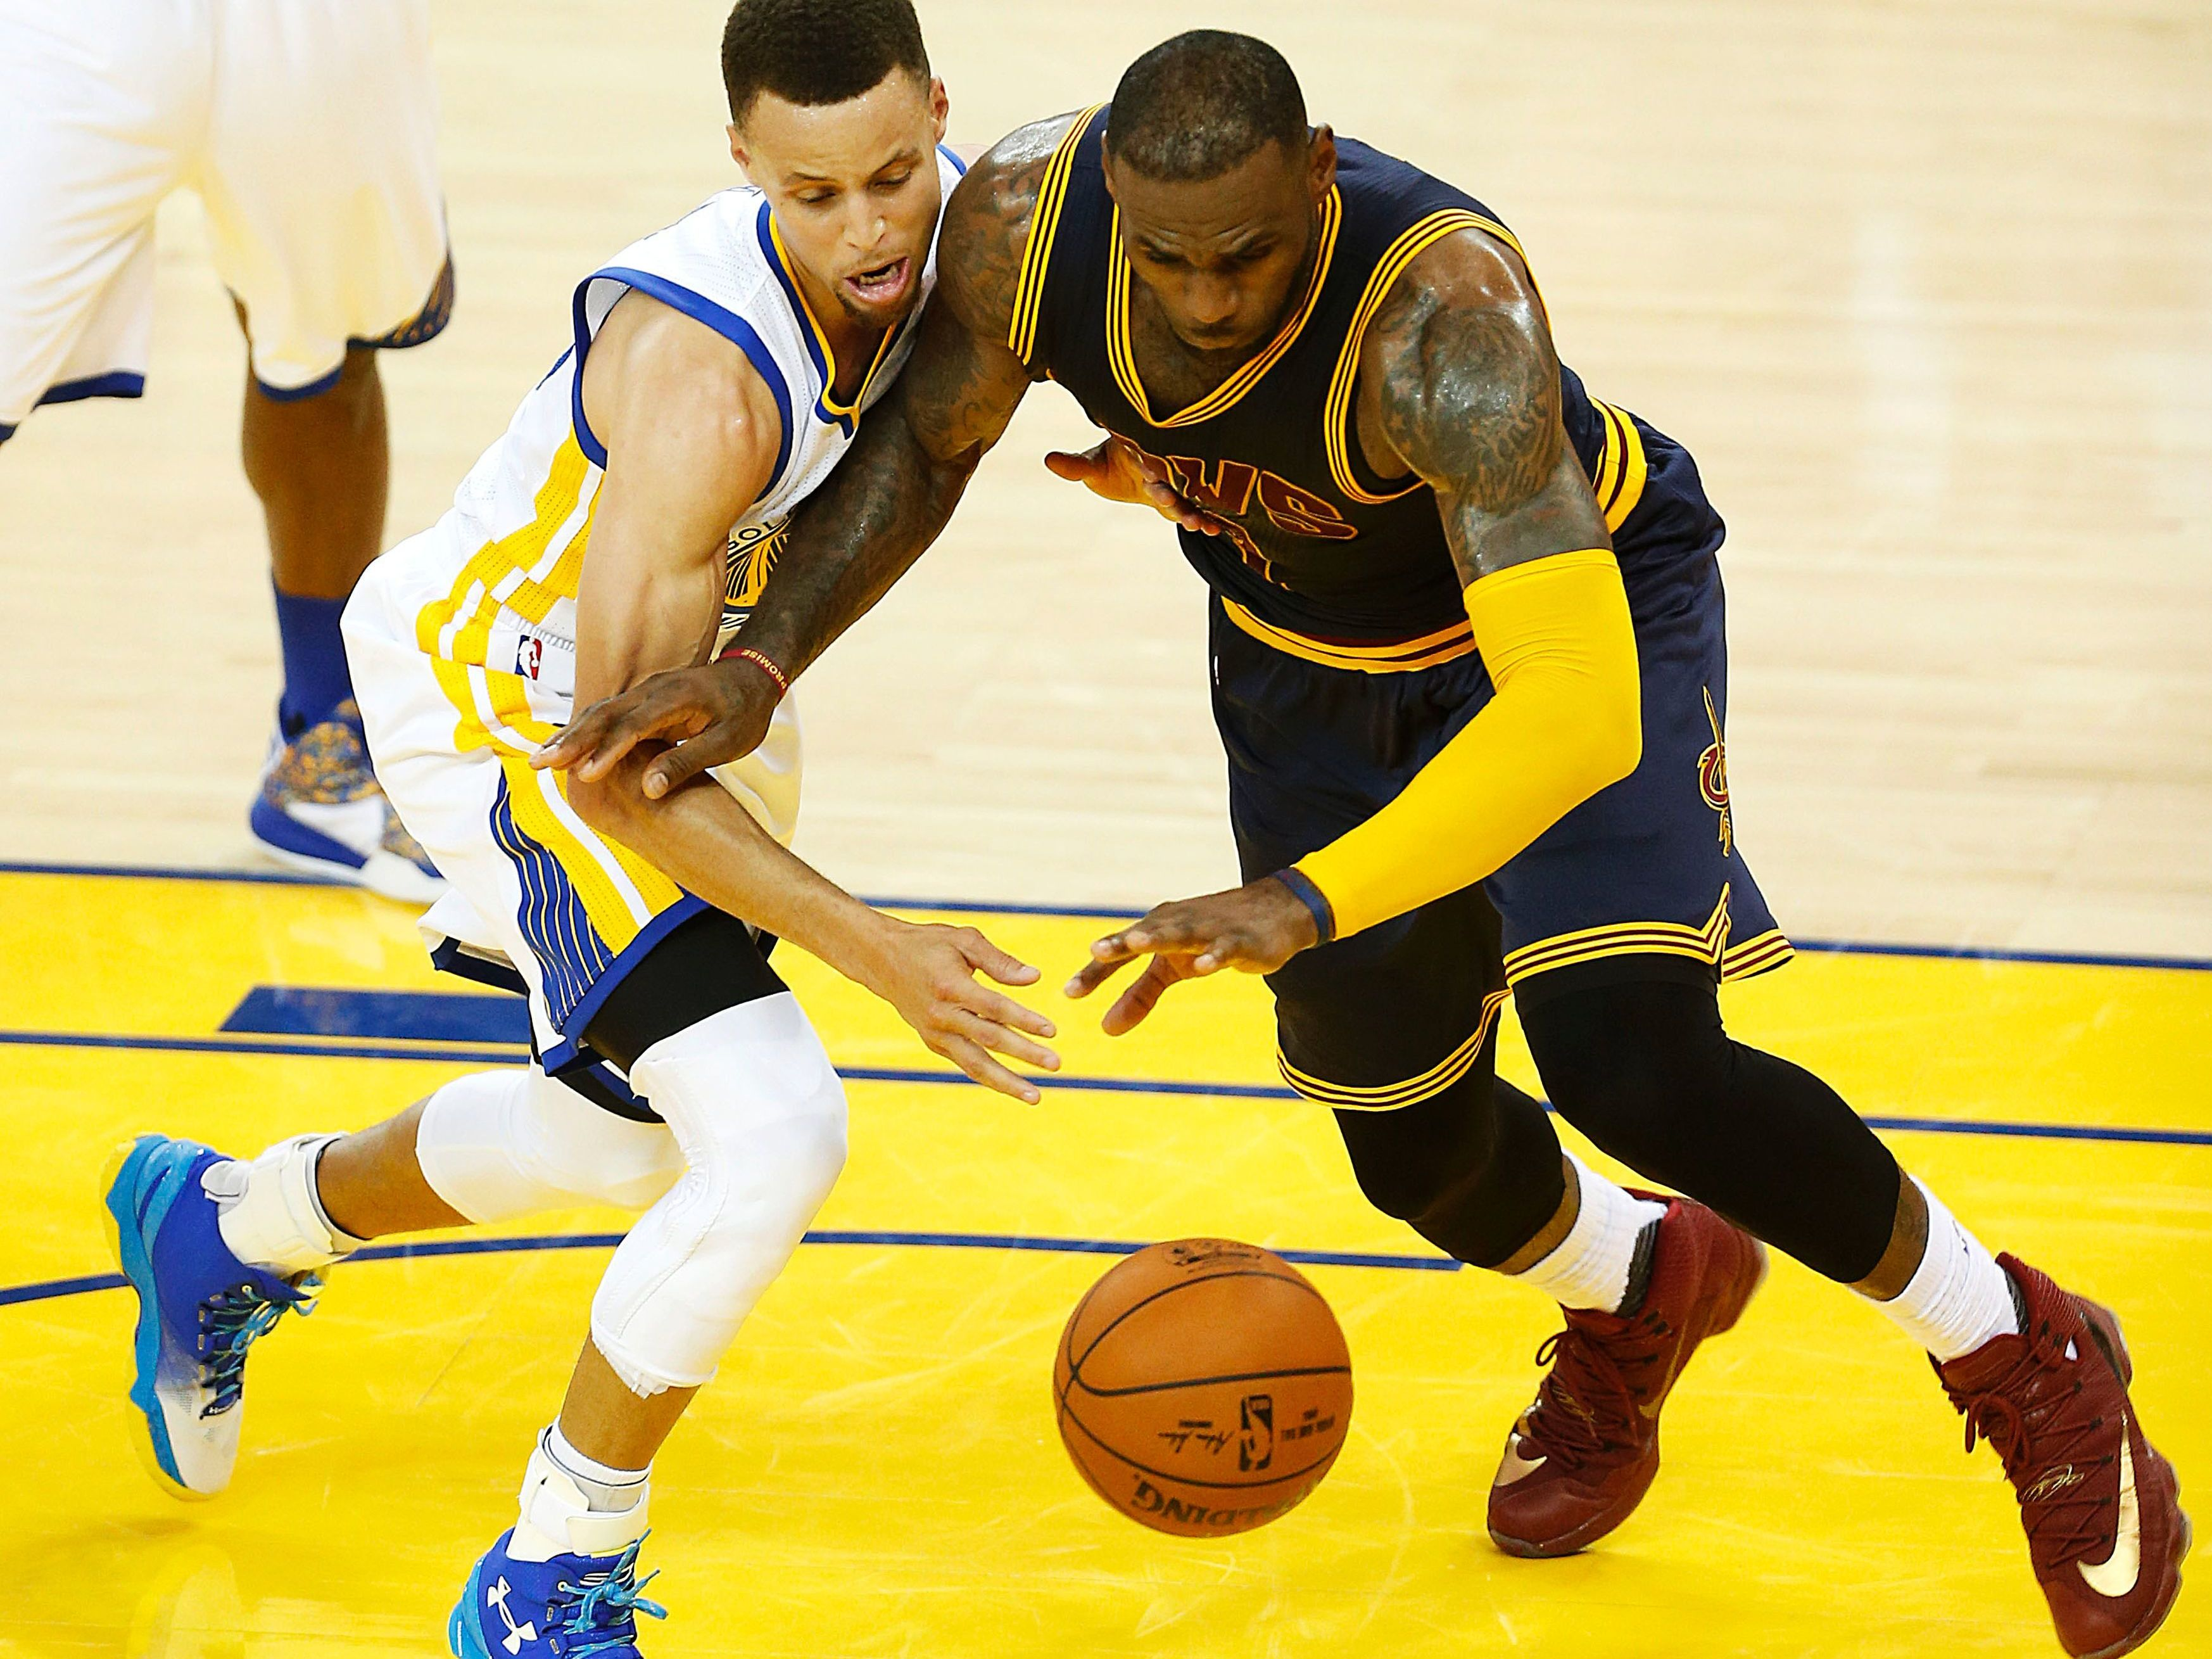 6af292a674b0 Golden State Warriors guard Stephen Curry (left) and then-Cleveland  Cavaliers forward LeBron James scramble for a loose ball during game 1 of  the 2016 NBA ...